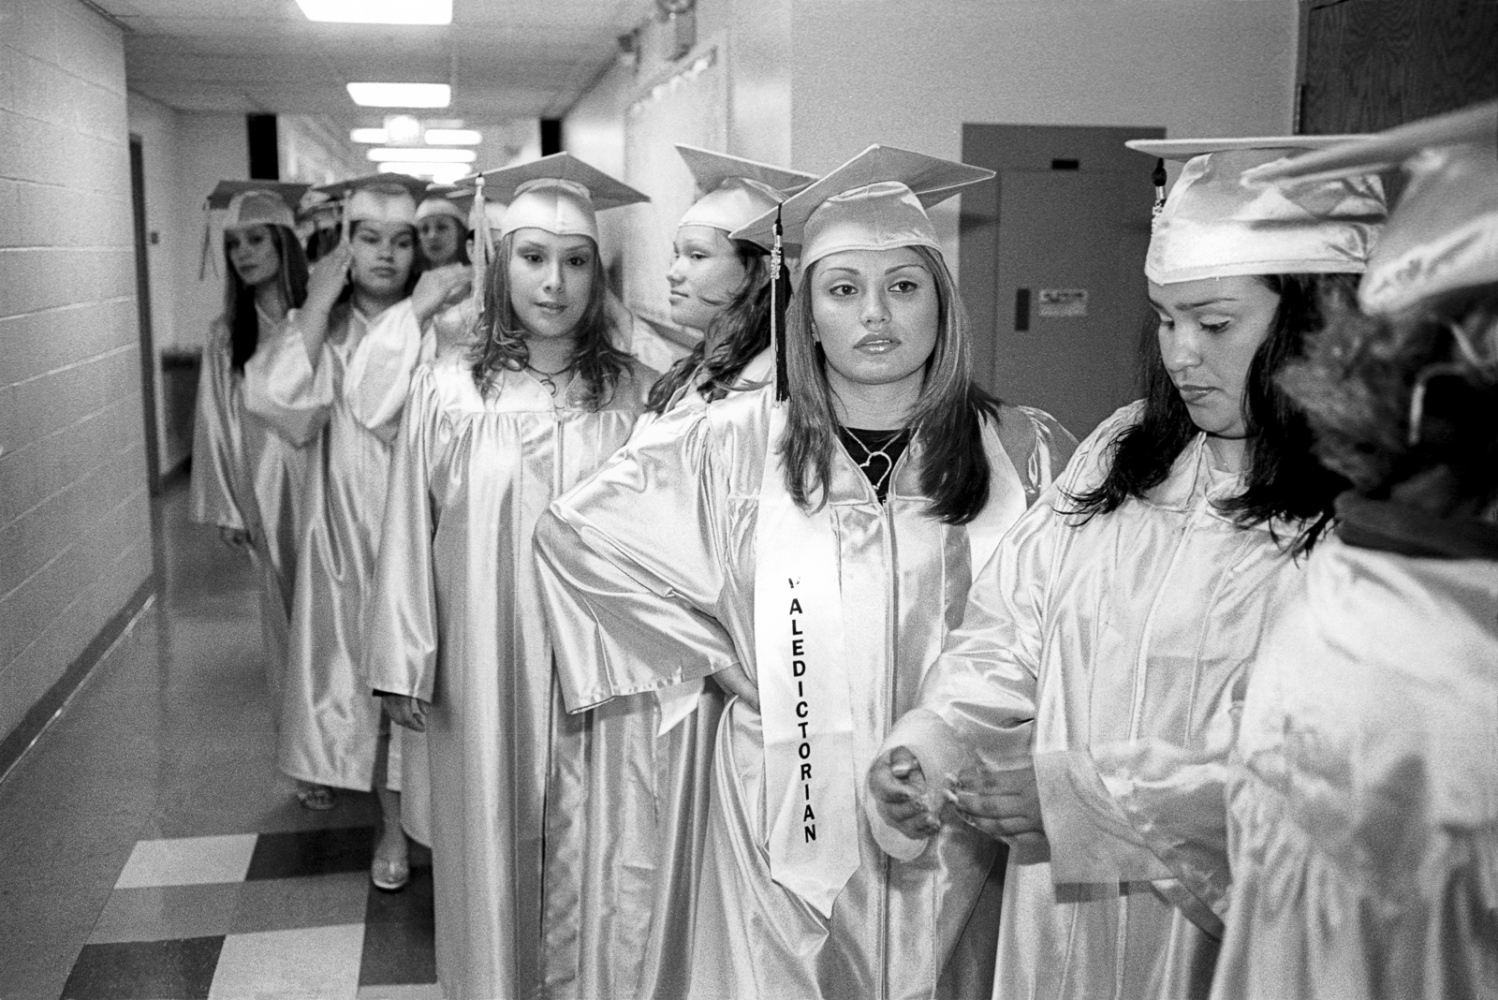 Karen waits with classmates for their graduation ceremony to start. Her marriage didn't last a year but she stayed focused on school and finished at the top of the class.